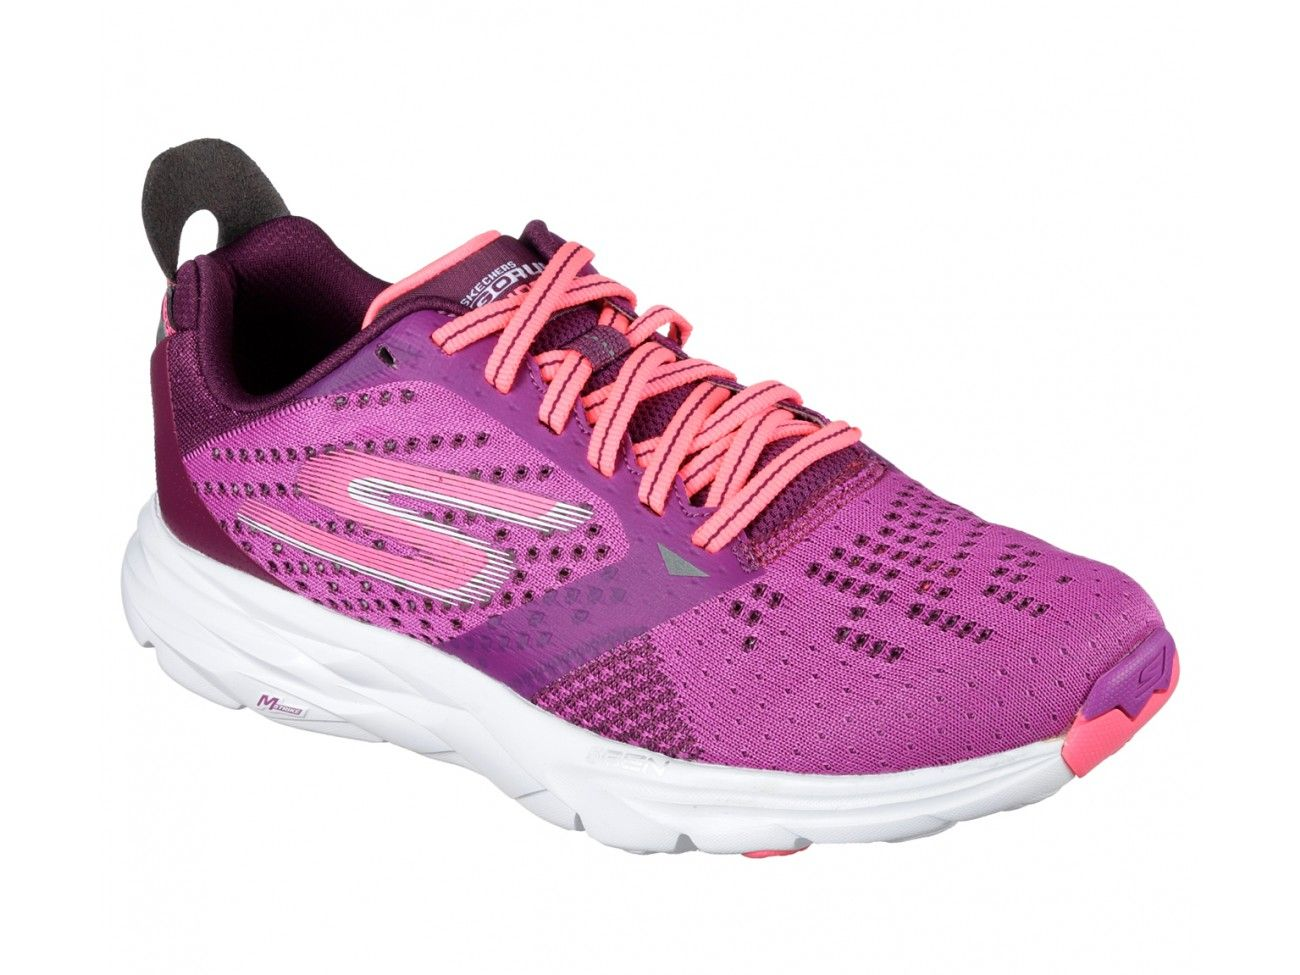 Sketchers - Womens GOrun Ride 6, strl